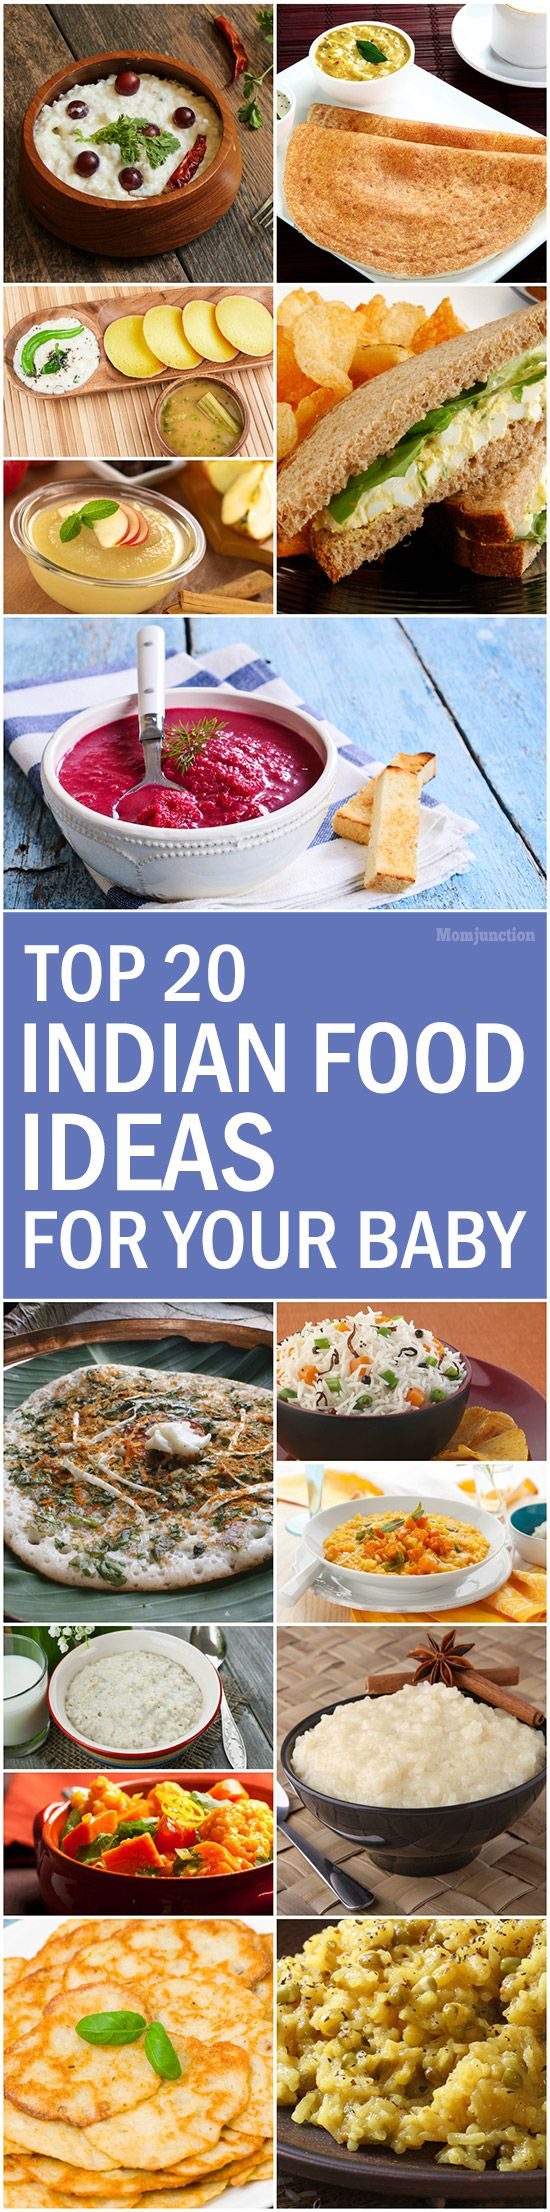 Top 20 Indian Food Ideas For Your Baby: read on to check out our different recipe recommendations and see how you can make them at home yourself.